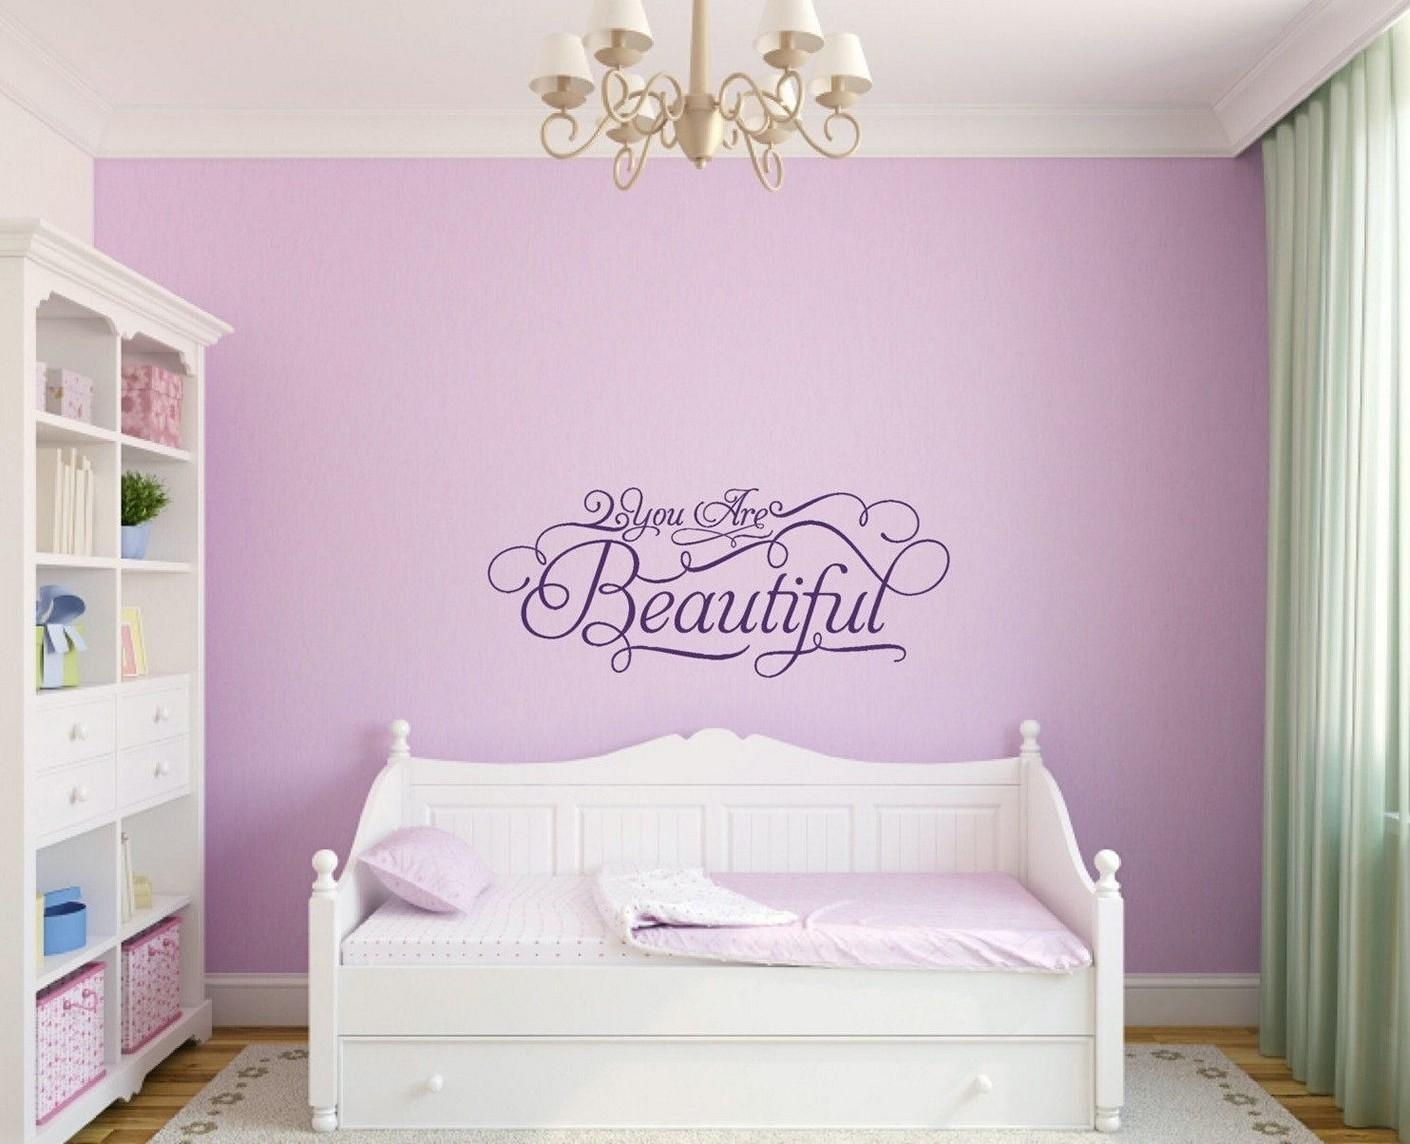 Girls Bedroom Wall Decor Butterfly Girl Wall Art Sticker Vinyl Intended For Wall Art For Teenage Girl Bedrooms (Image 13 of 20)